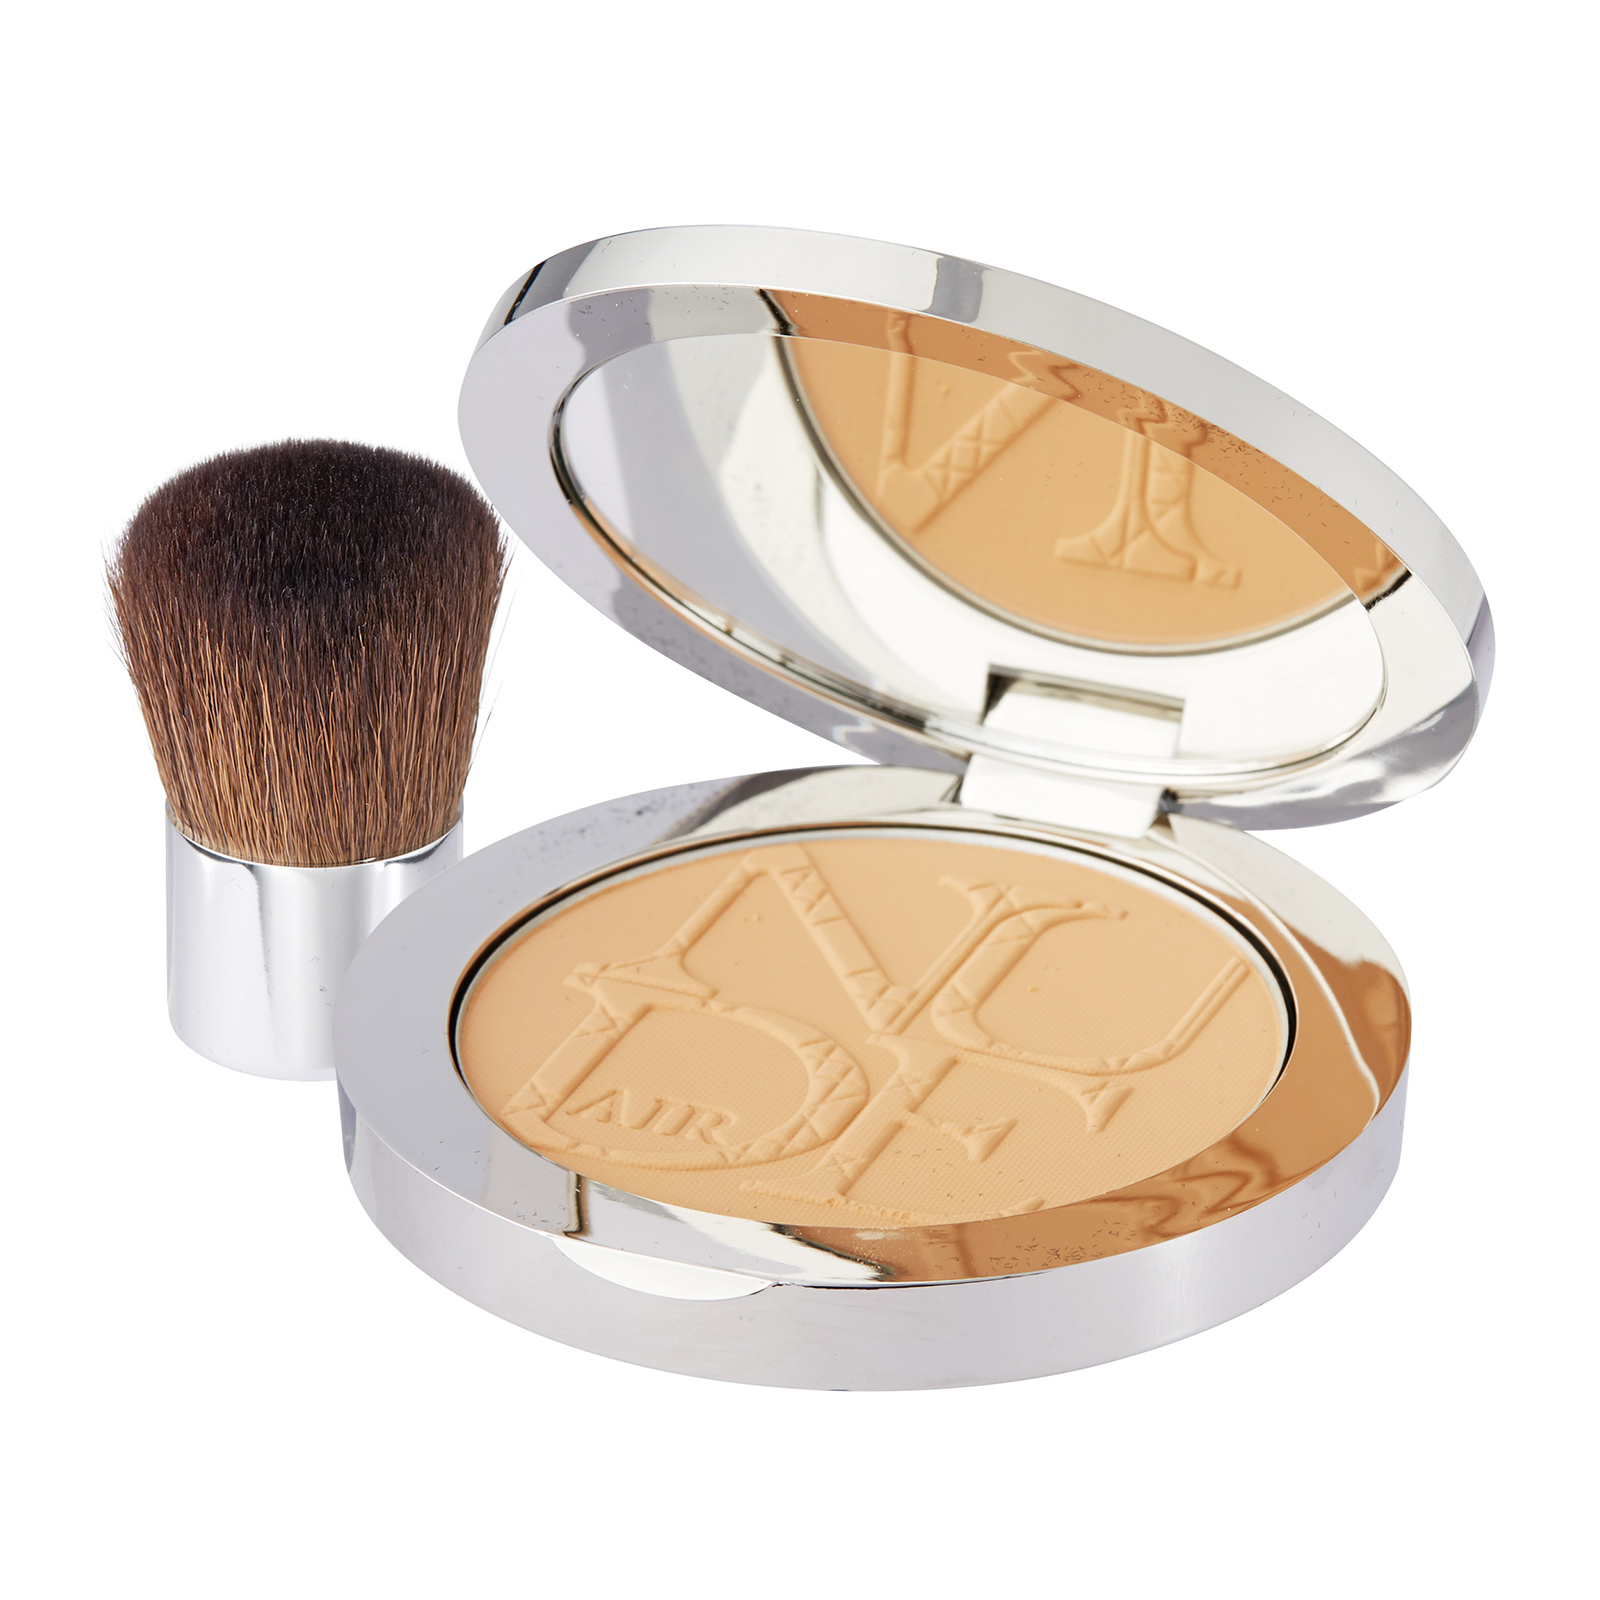 Christian Dior DiorSkin Nude Air  Healthy Glow Invisible Powder With Kabuki Brush 030 Medium Beige, 0.35oz, 10g